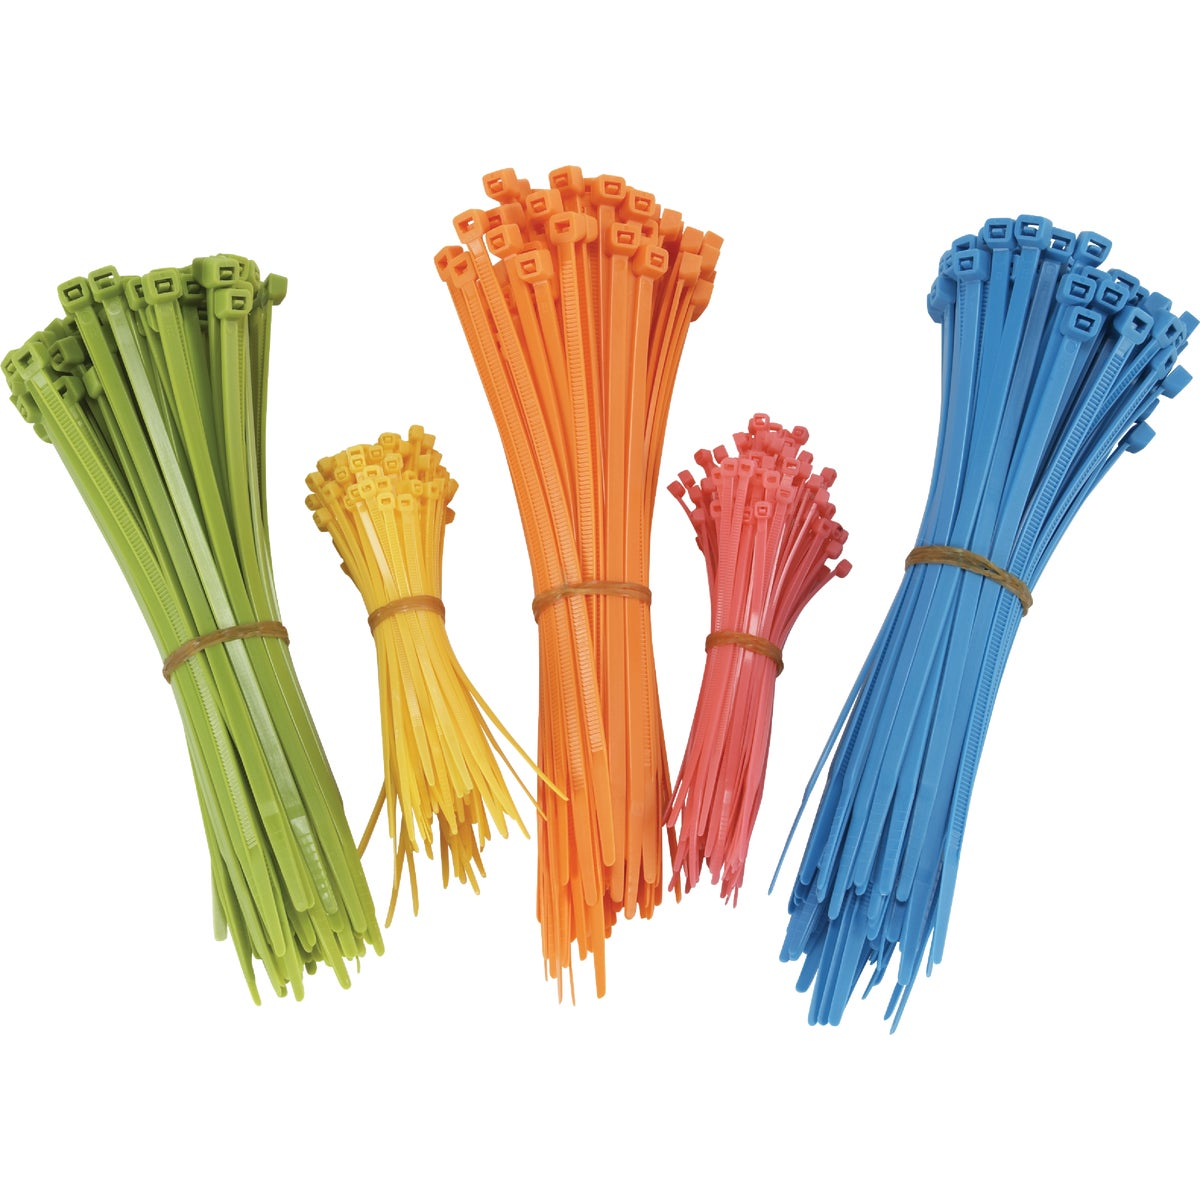 500PC ASSORTED CABLE TIE - ZMX-BD01 by Do it Best